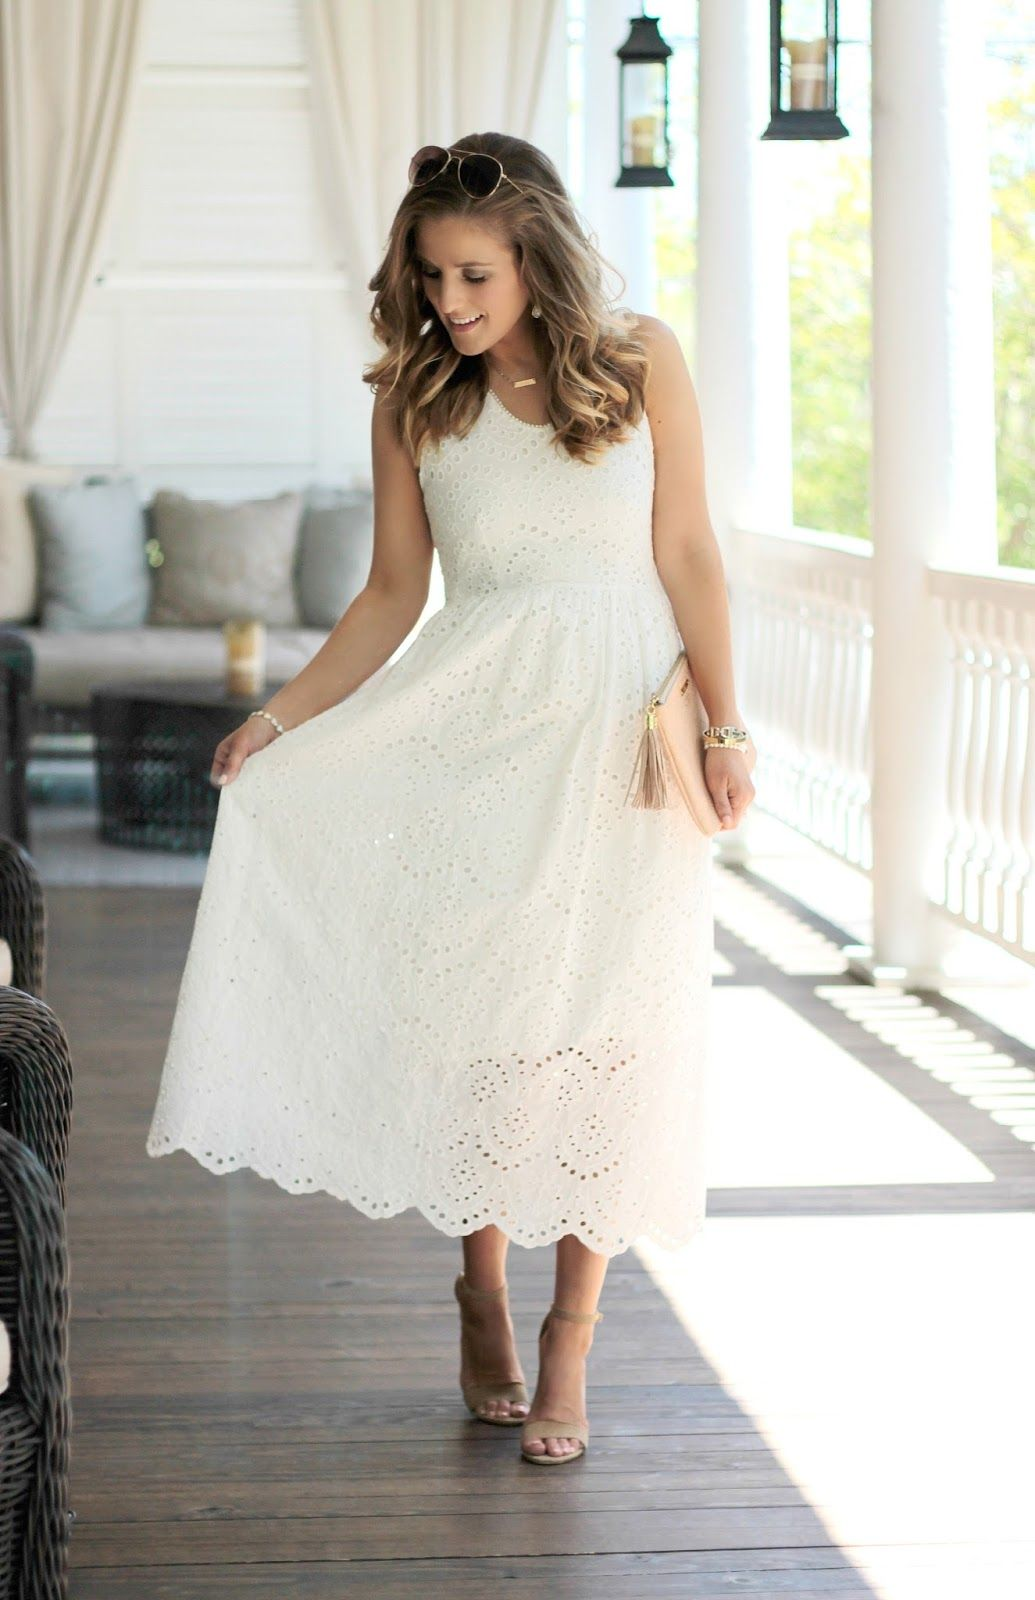 41d9baa48 Eyelet dresses are my favorite! White Sundress Wedding, White Wedding  Dresses, White Eyelet